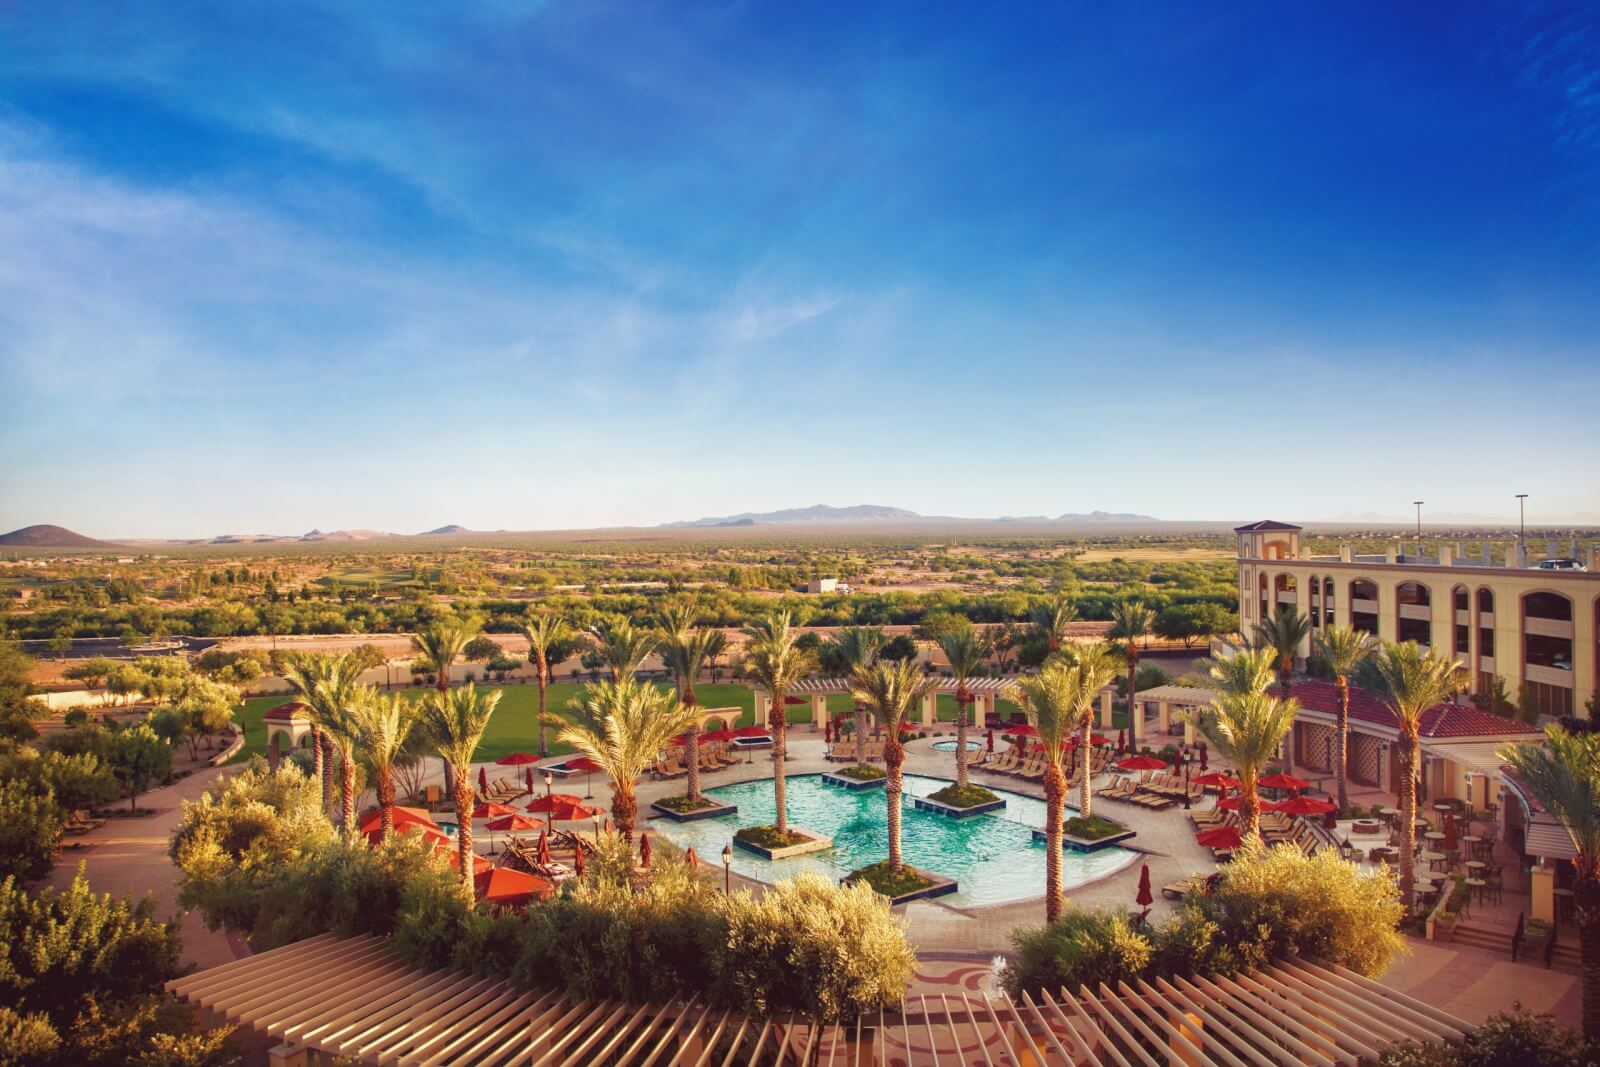 A drone view of the Casino Del Sol pool lined with palm trees and the mountains in the distance.